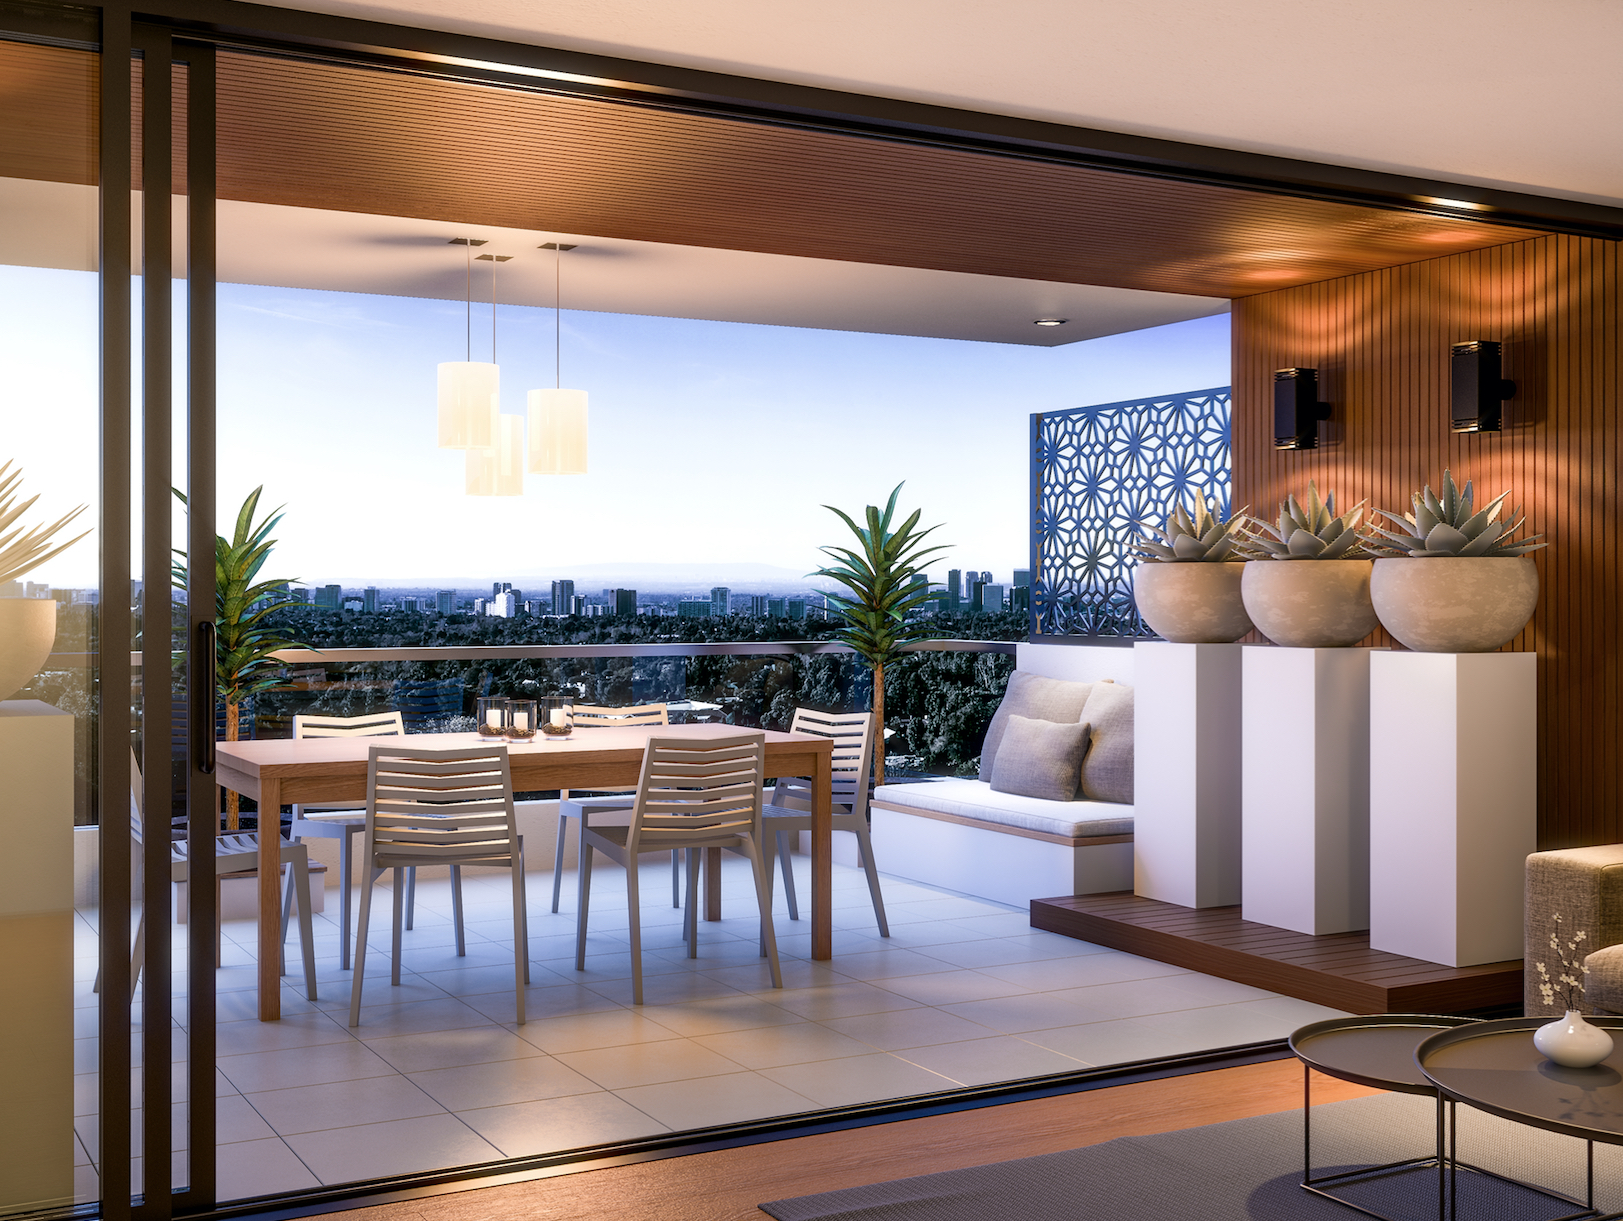 """Balcony concept & design - The Small Garden                       Normal   0           false   false   false     EN-AU   ZH-CN   X-NONE                                                                                                                                                                                                                                                                                                                                                                                                                                                                                                                                                                                                                                                                                                                                                                                                                                                                                    /* Style Definitions */ table.MsoNormalTable {mso-style-name:""""Table Normal""""; mso-tstyle-rowband-size:0; mso-tstyle-colband-size:0; mso-style-noshow:yes; mso-style-priority:99; mso-style-parent:""""""""; mso-padding-alt:0cm 5.4pt 0cm 5.4pt; mso-para-margin:0cm; mso-para-margin-bottom:.0001pt; mso-pagination:widow-orphan; font-size:10.0pt; font-family:Cambria; mso-ansi-language:EN-AU; mso-fareast-language:EN-US;}      This balcony design carries on the neutral tones of the adjoining apartment, but the use of foliage gives it a distinguished feel of its own."""